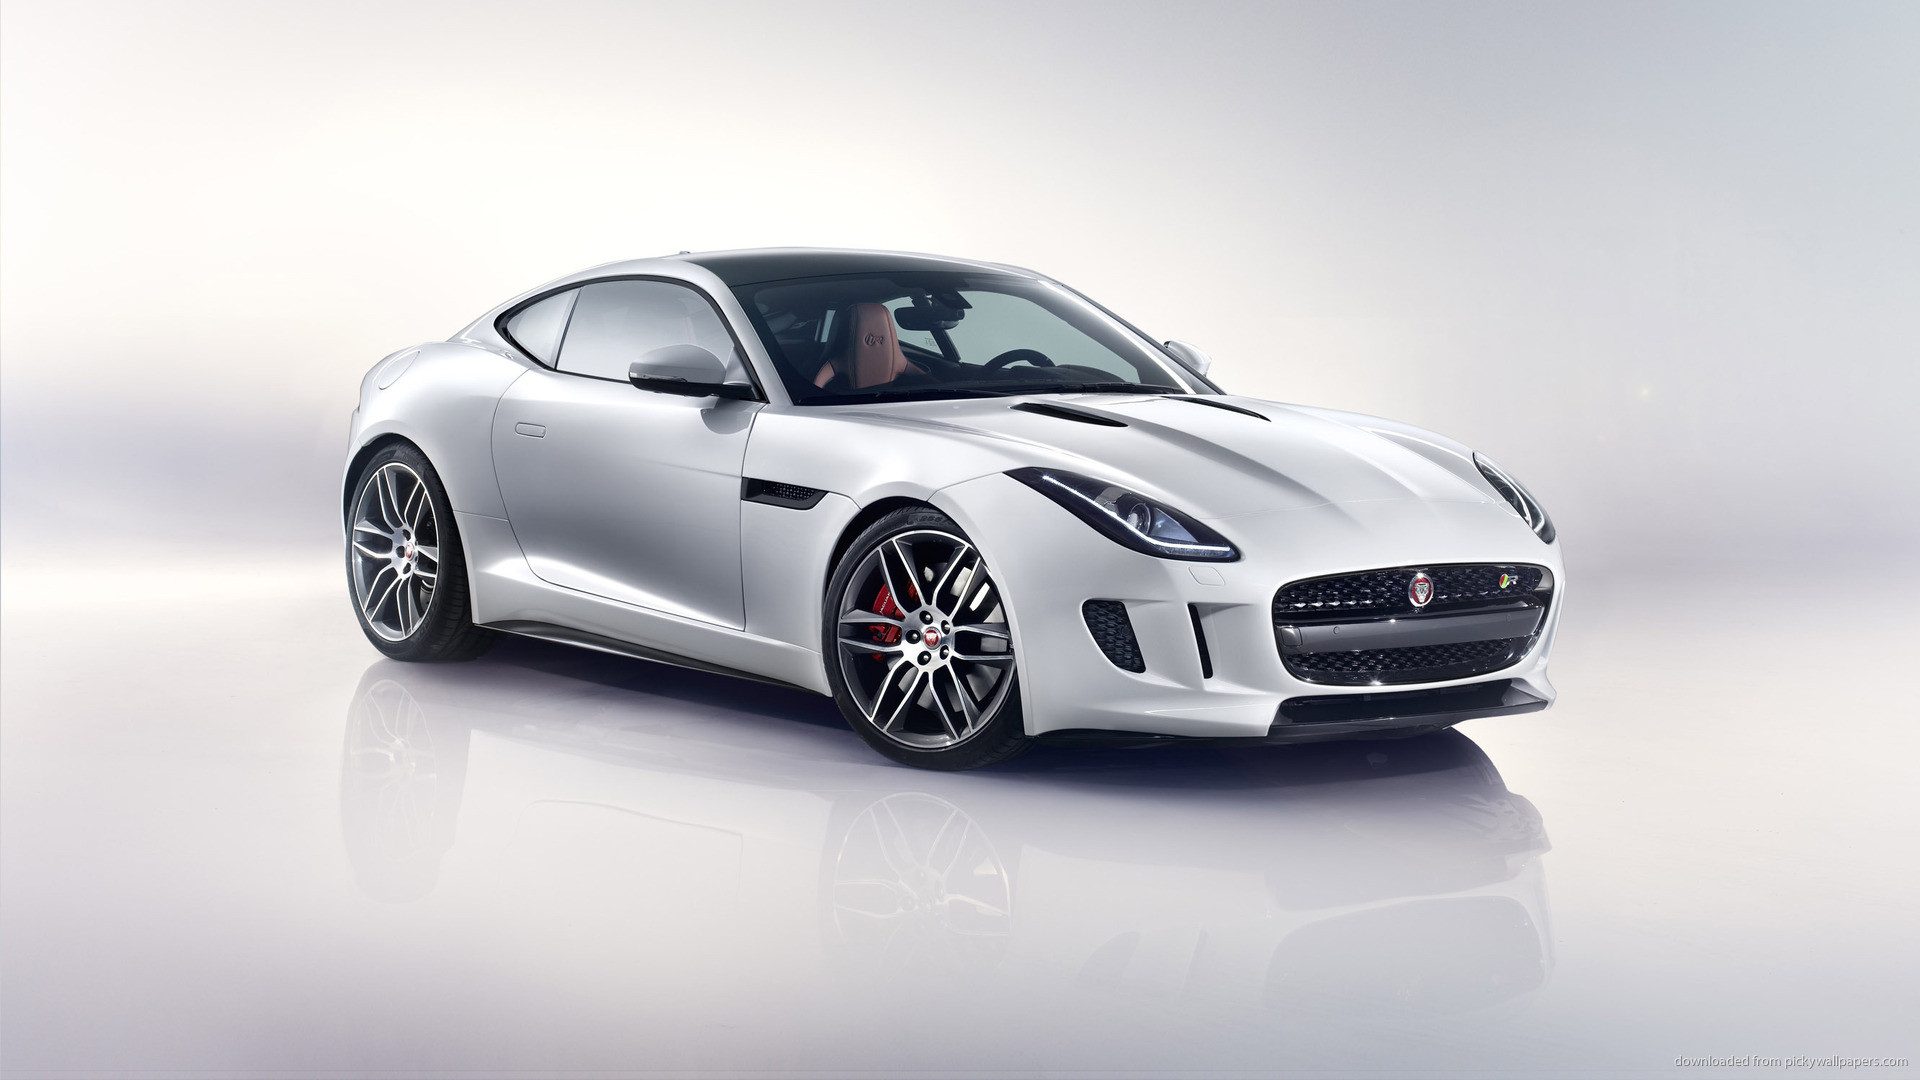 1920x1080 ... Wallpaper Jaguar F Type Coupe Desktop ...